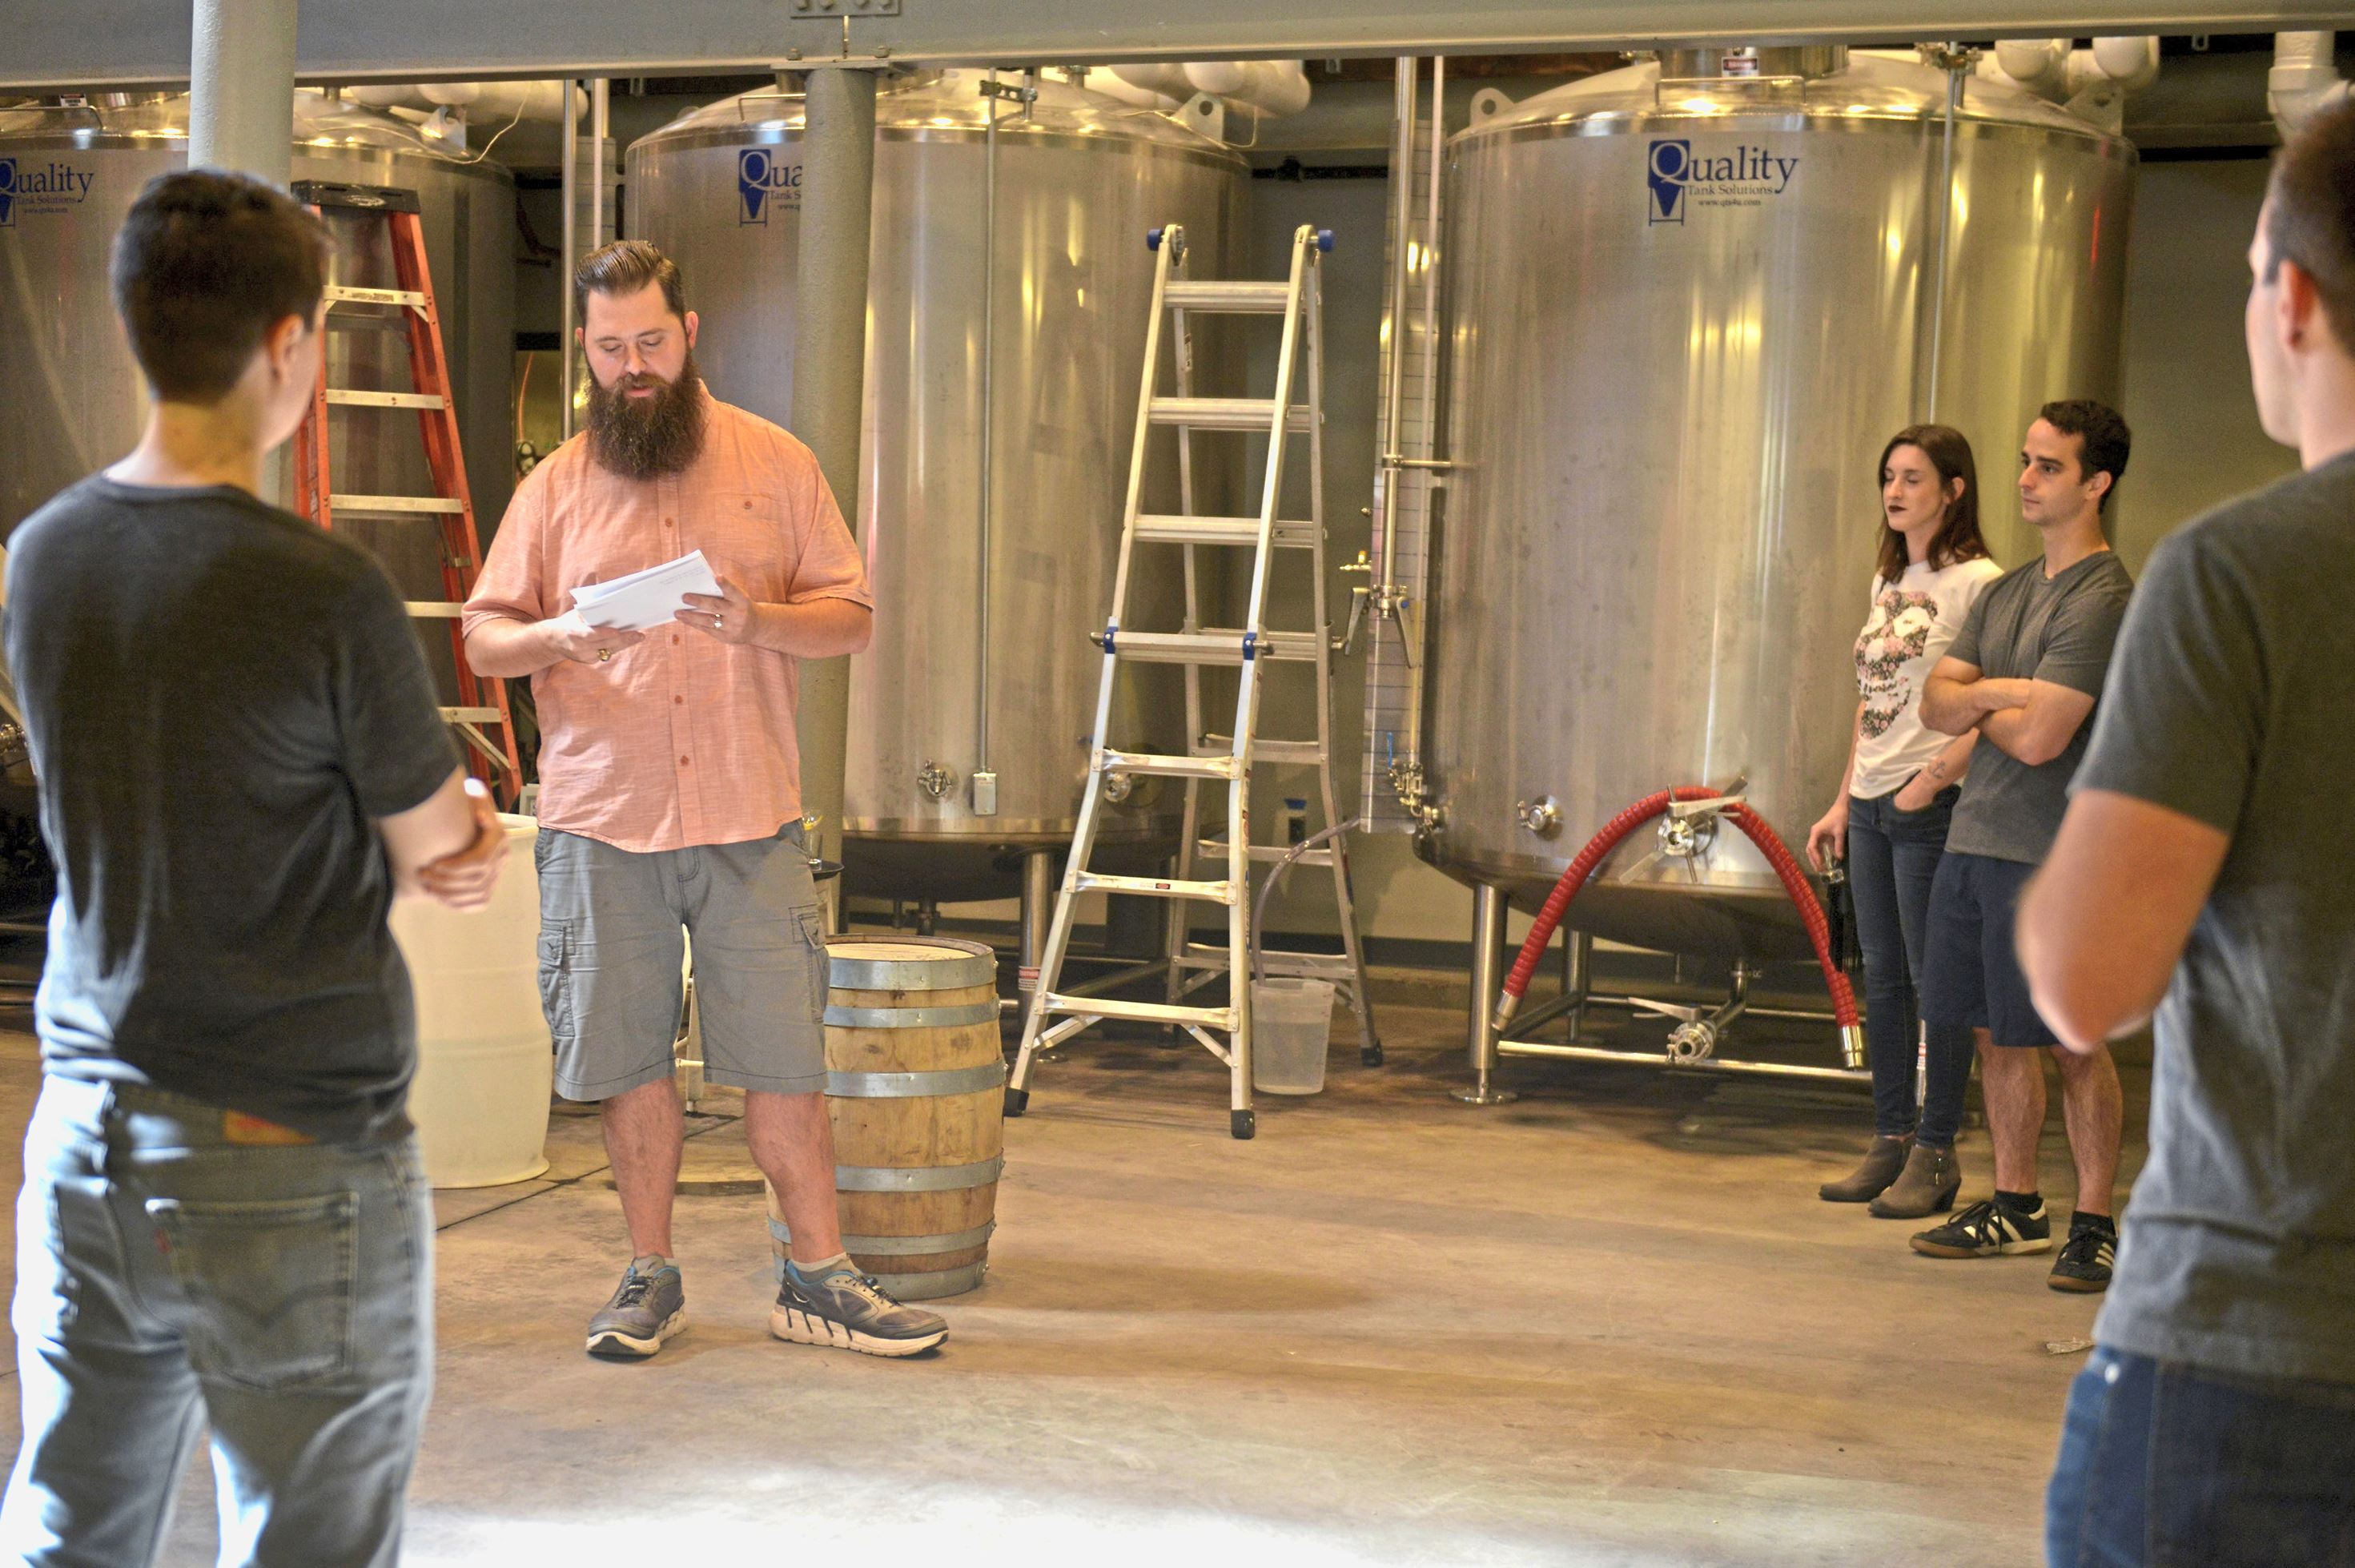 20171014ppThreadbare2MAG Justin Williams, a volunteer tour guide, describes the history and production process at Threadbare Cider and Mead in Spring Garden.